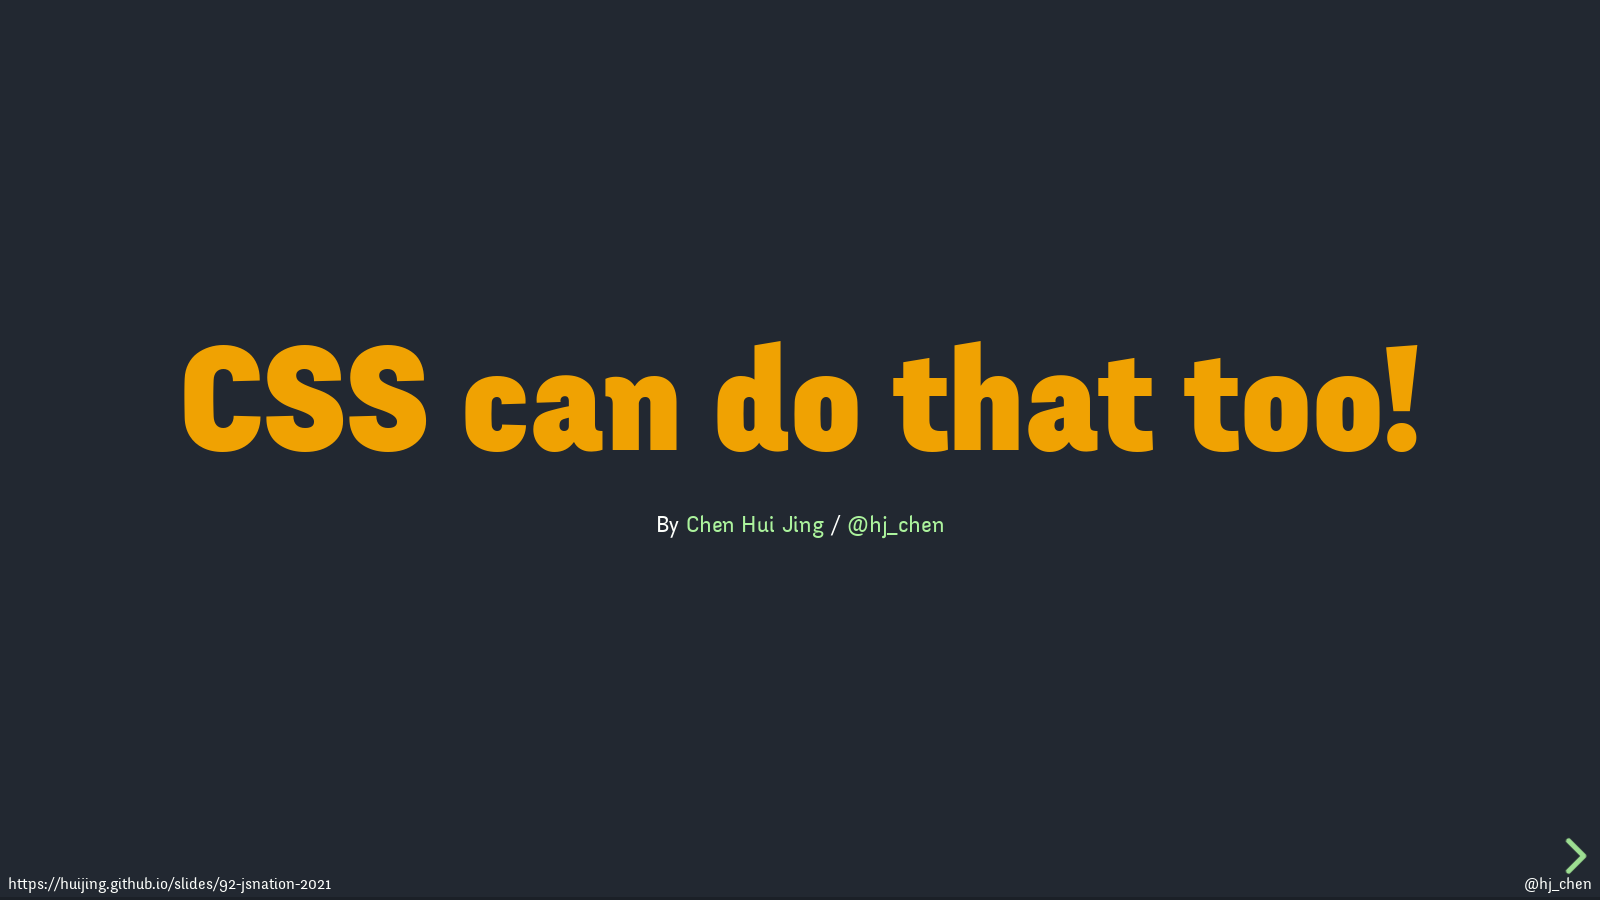 CSS can do that too!